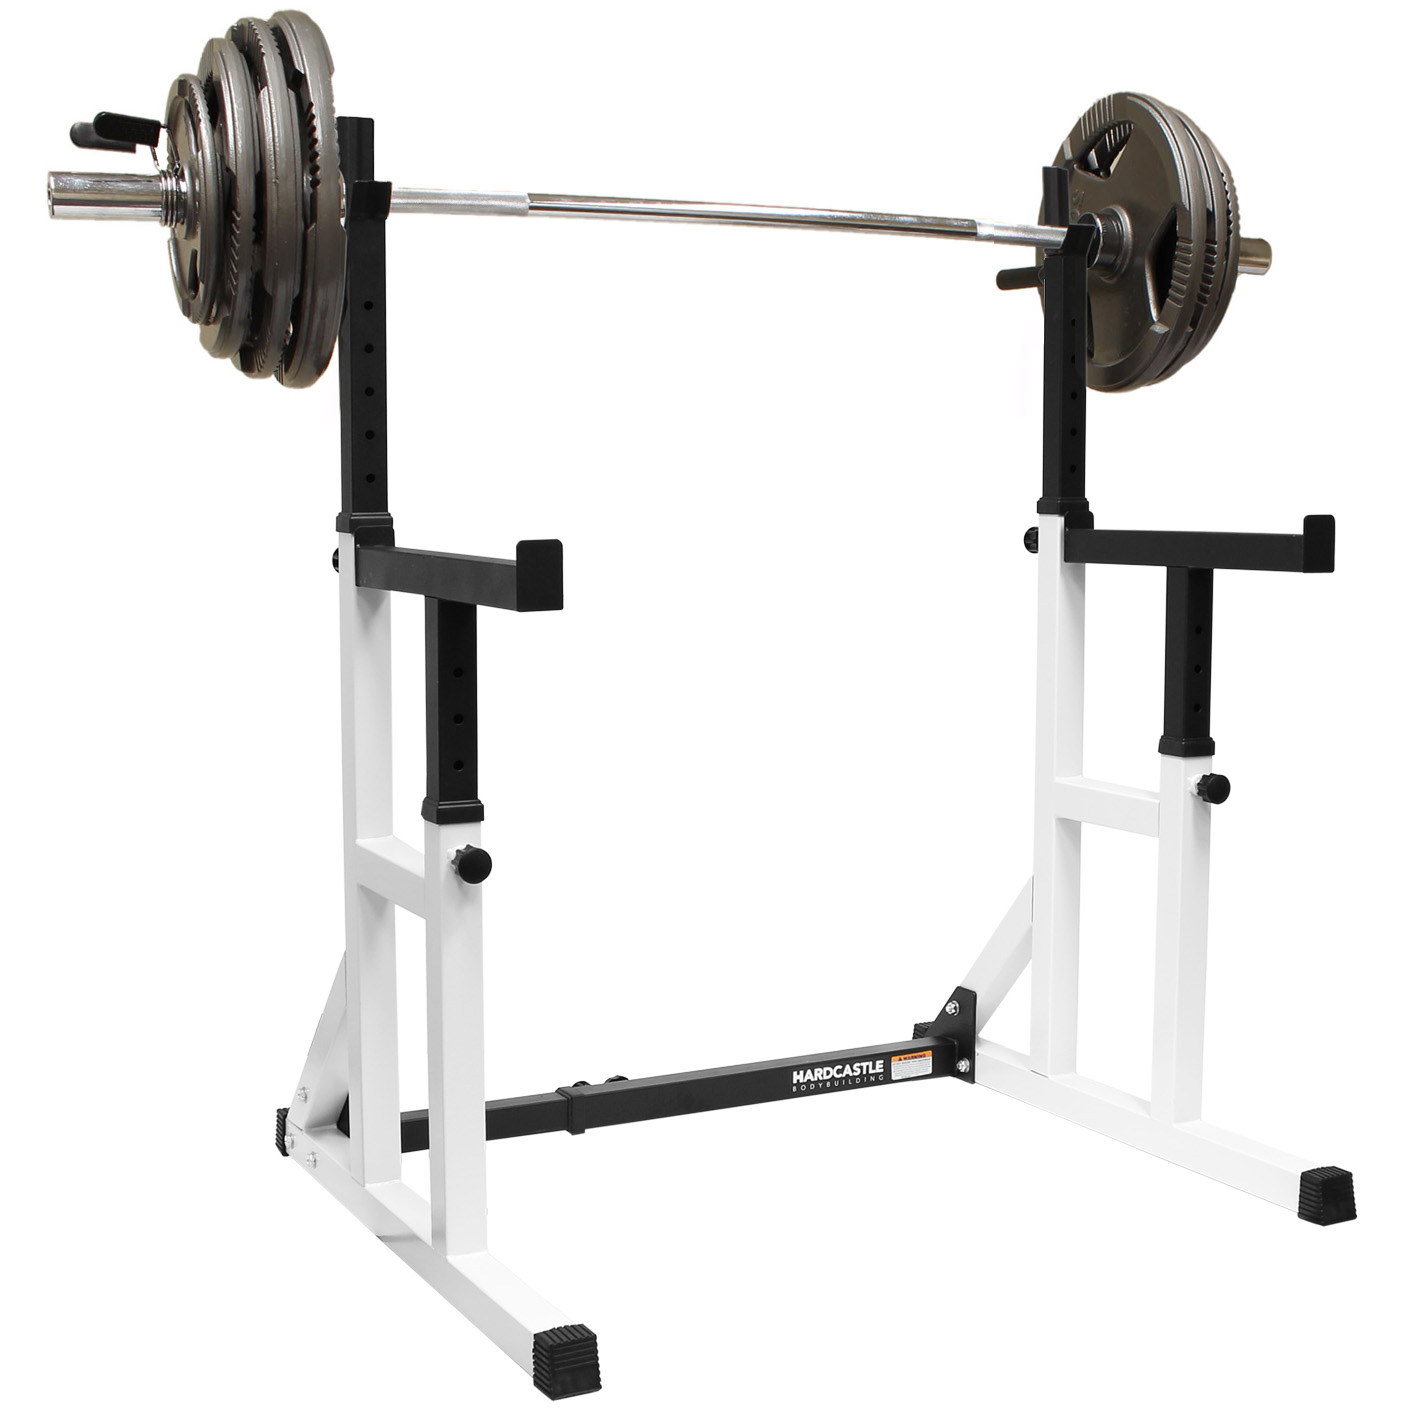 Weight Bench Cage Adjustable Weight Bench Heavy Duty Squat Frame Rack